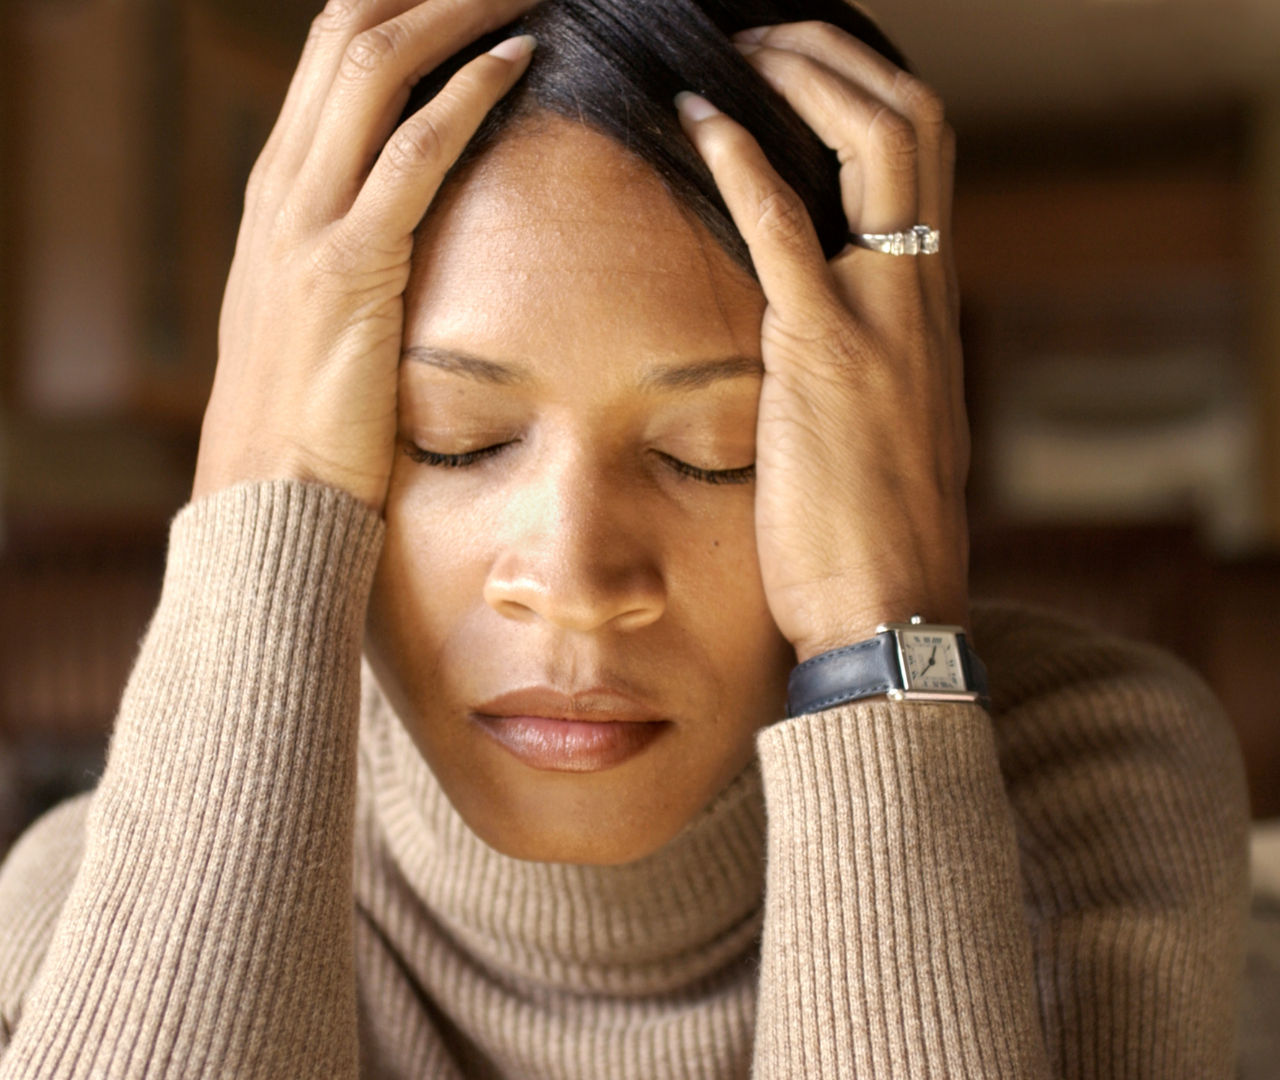 Woman with her head in her hands and eyes closed looking stressed